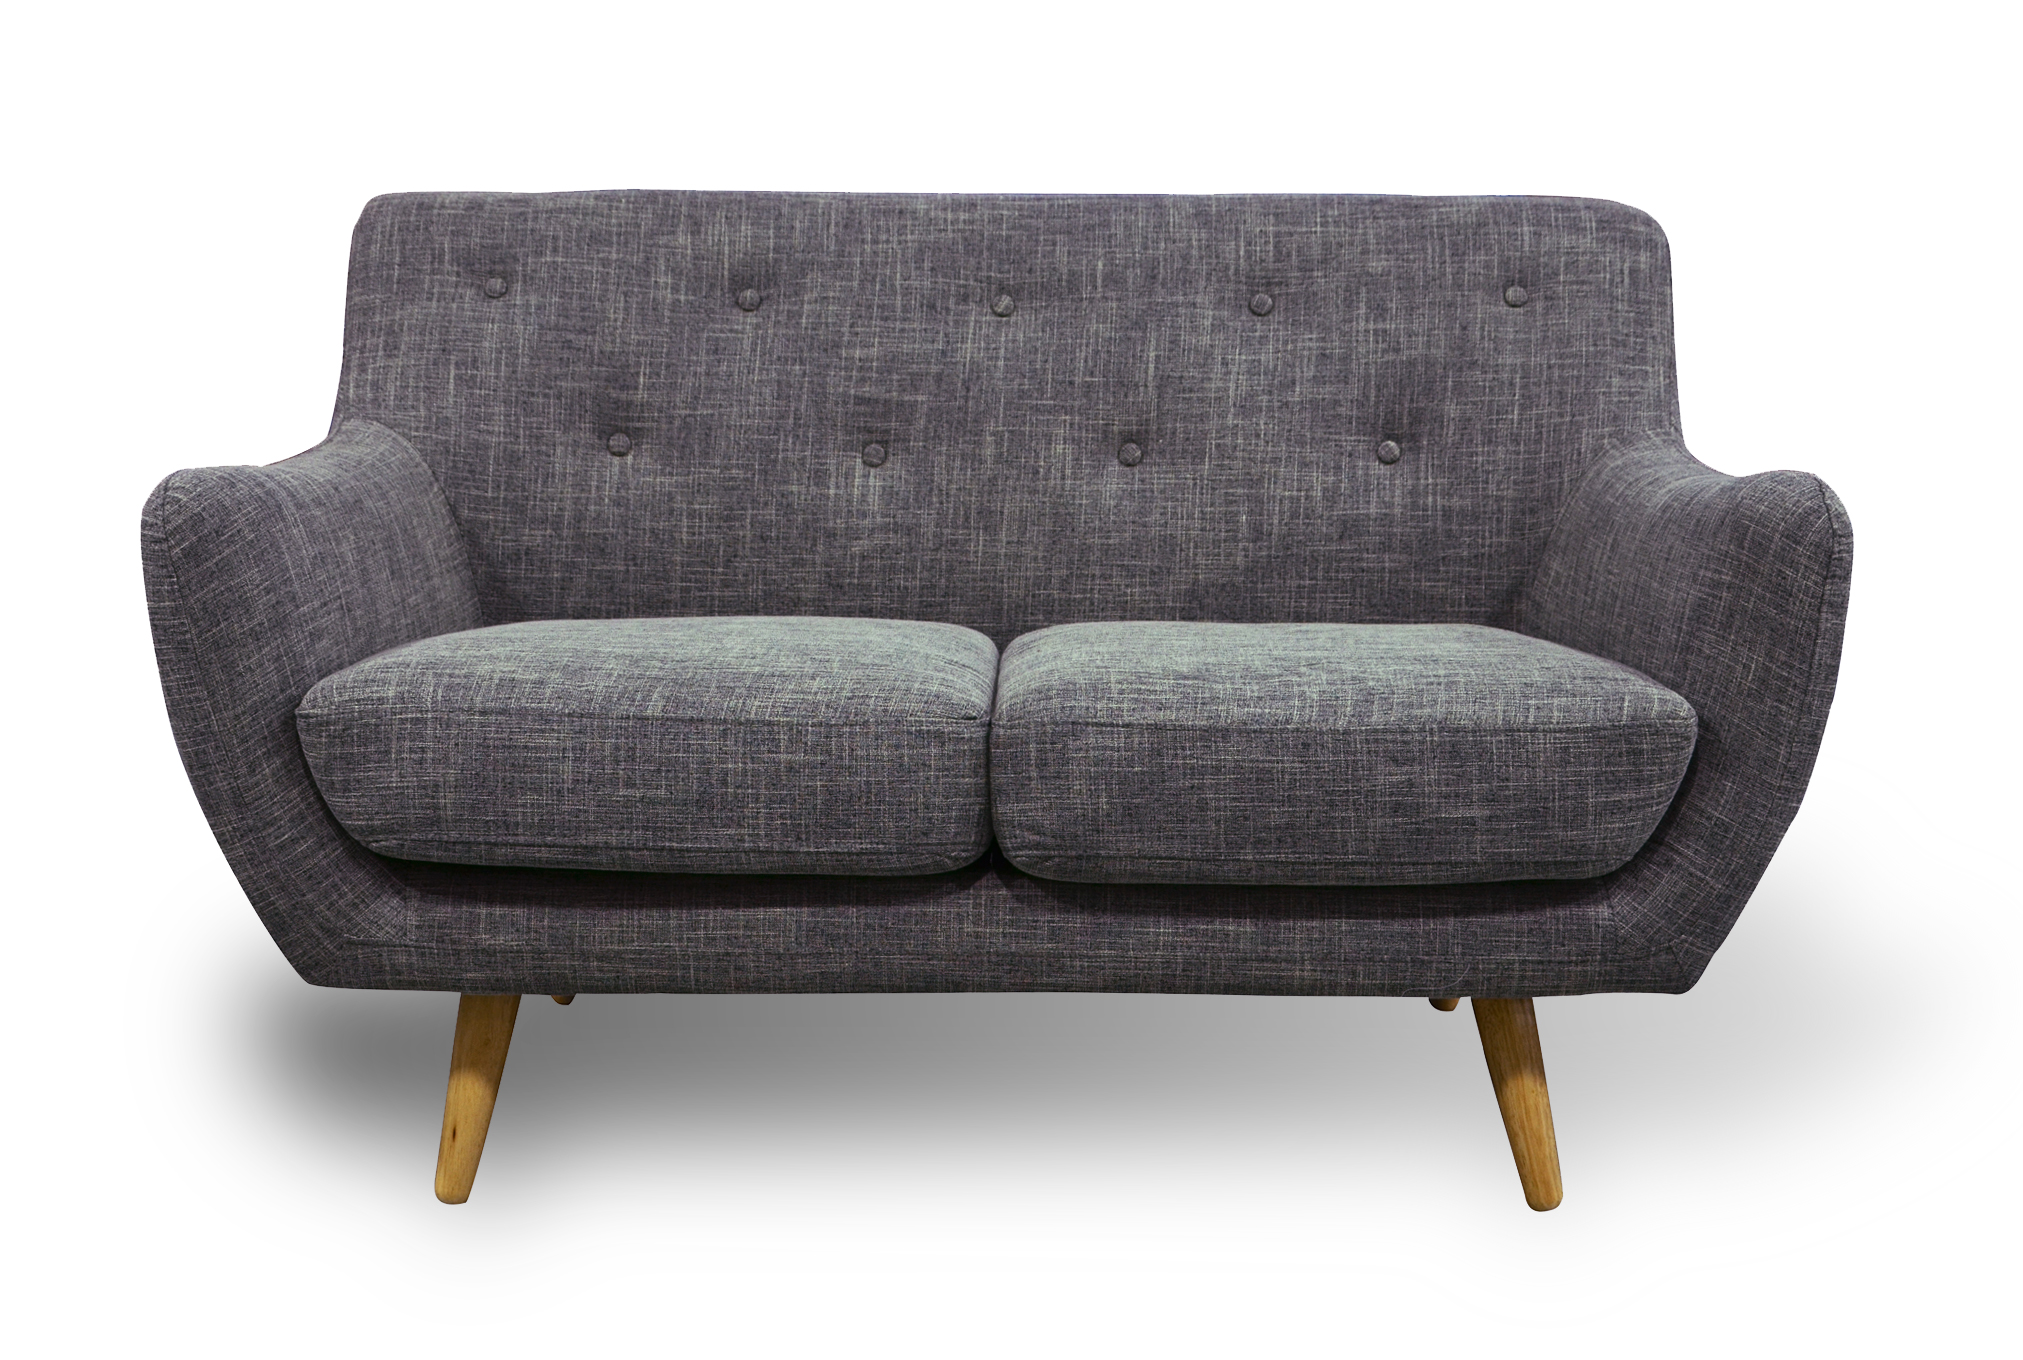 Retro Scandinavian Compact Design Grey 2 Seater Sofa By Home Elements